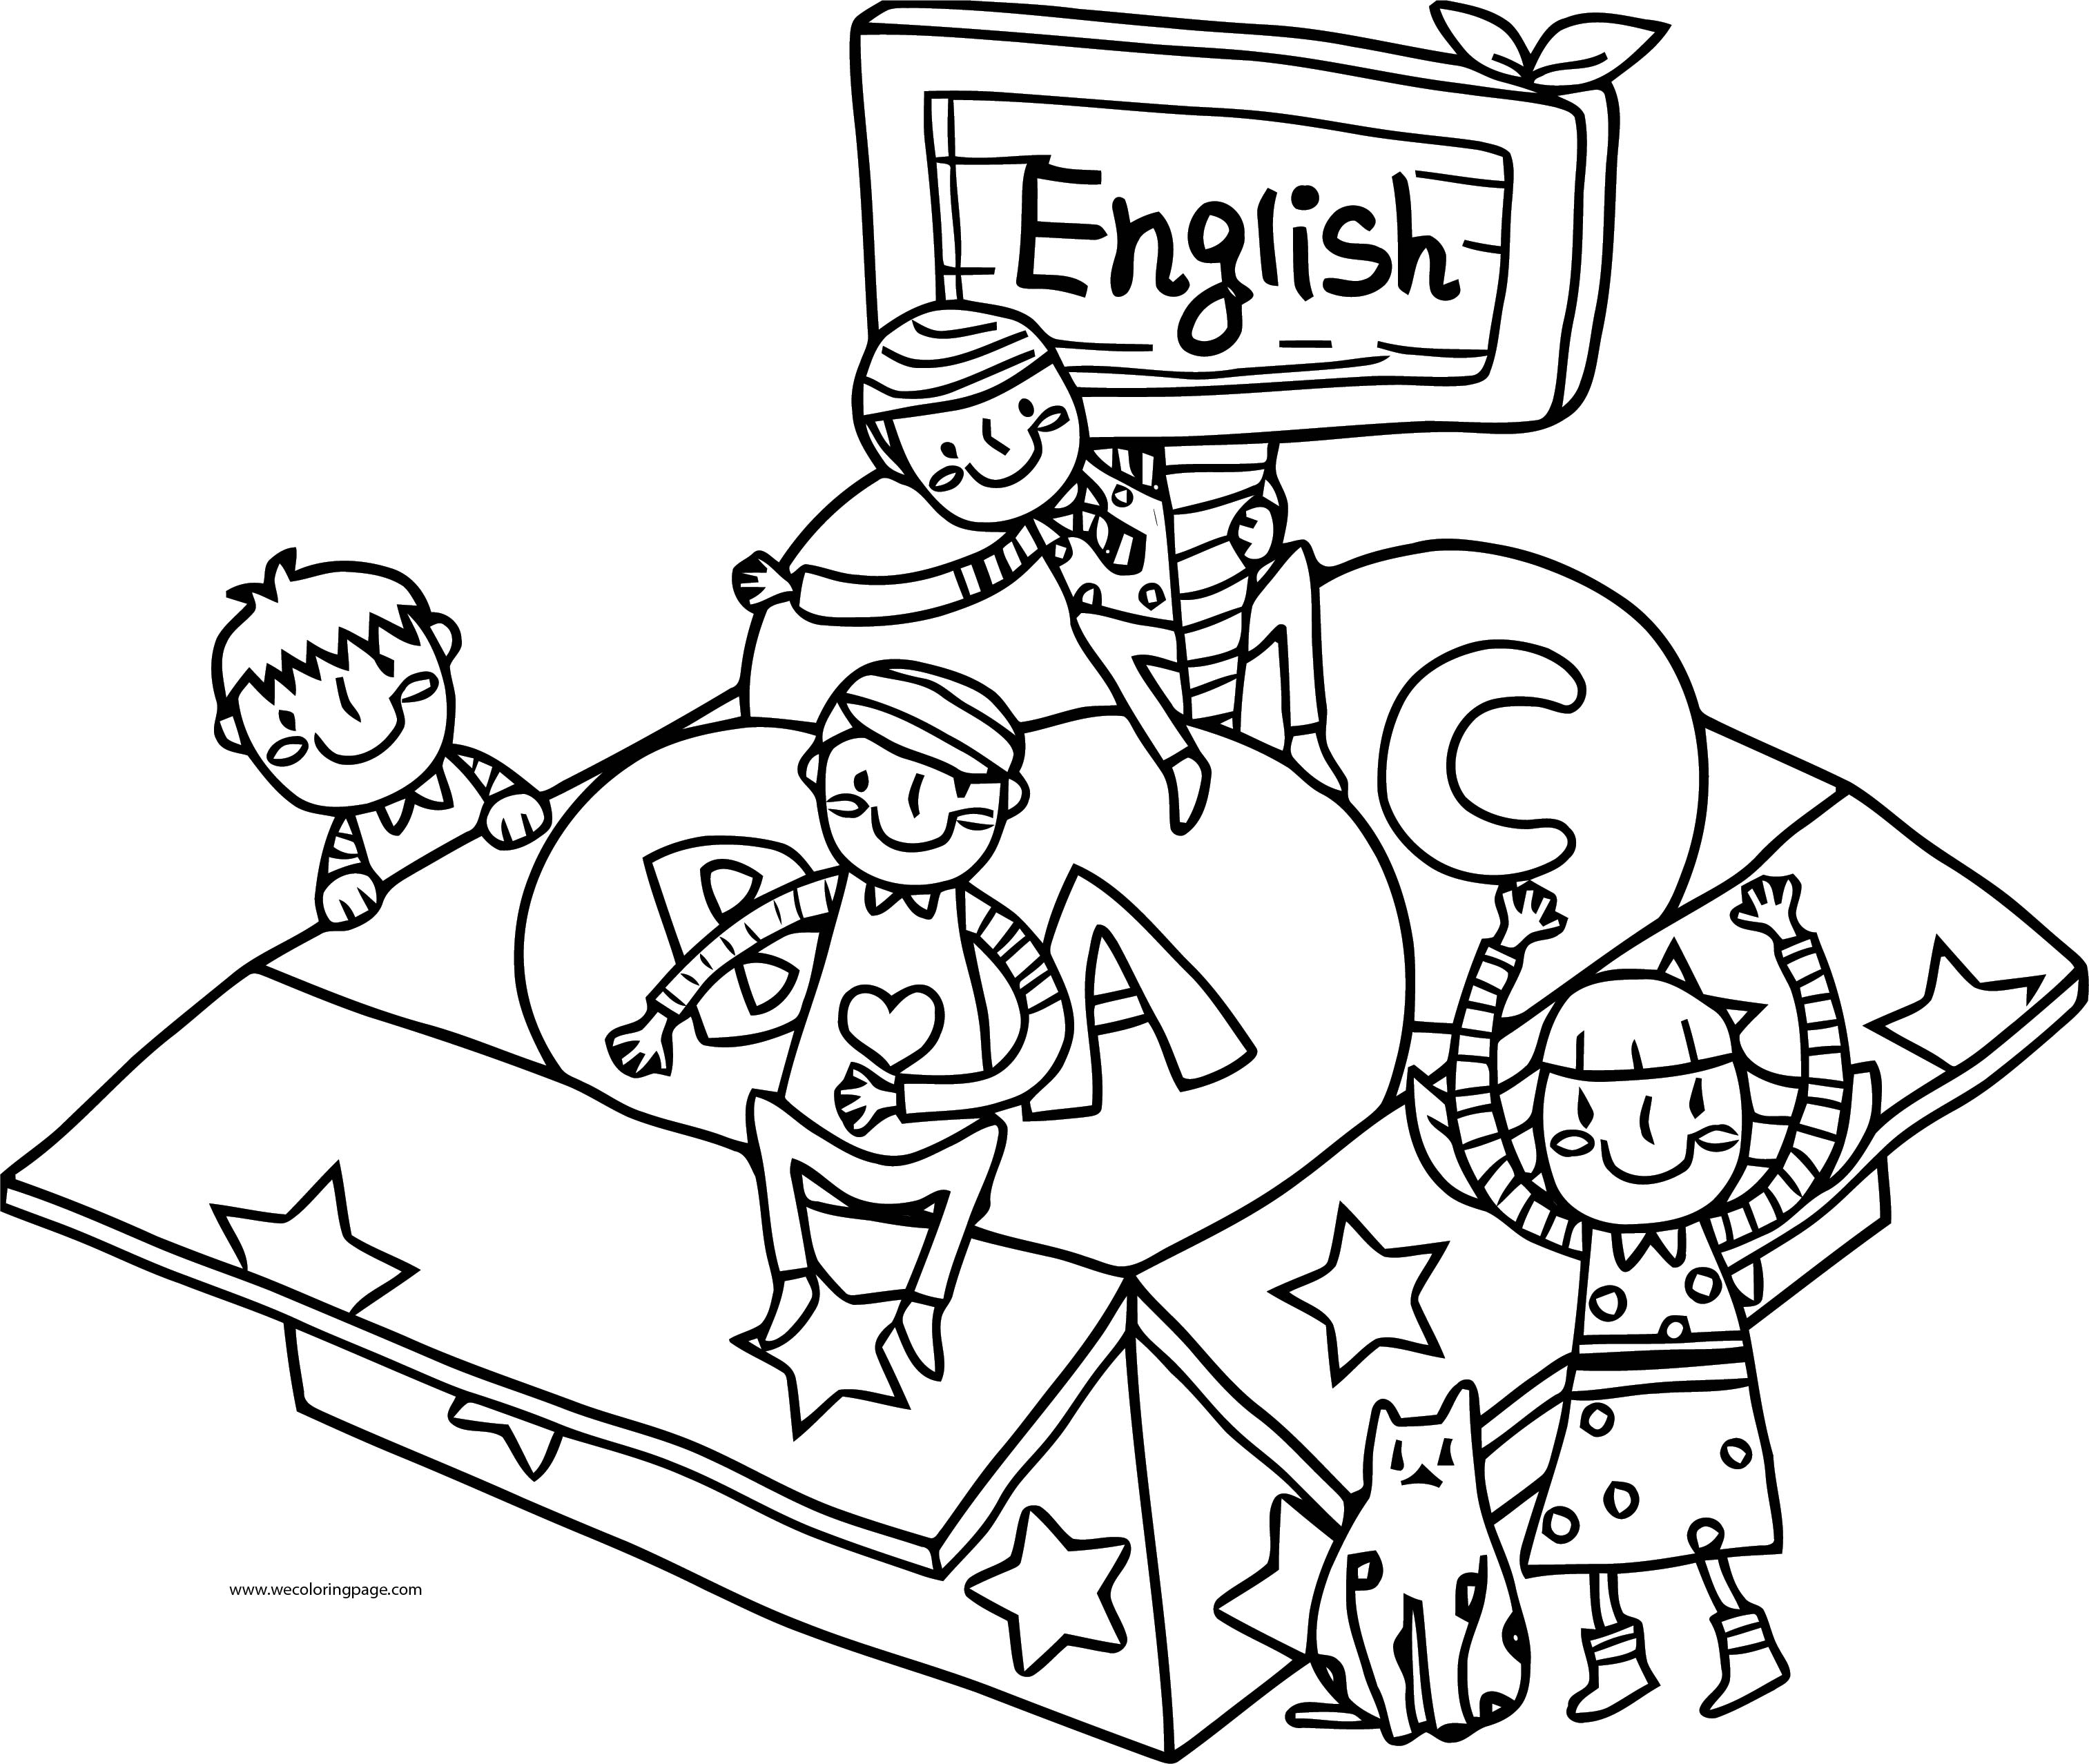 English Teacher We Coloring Page 060